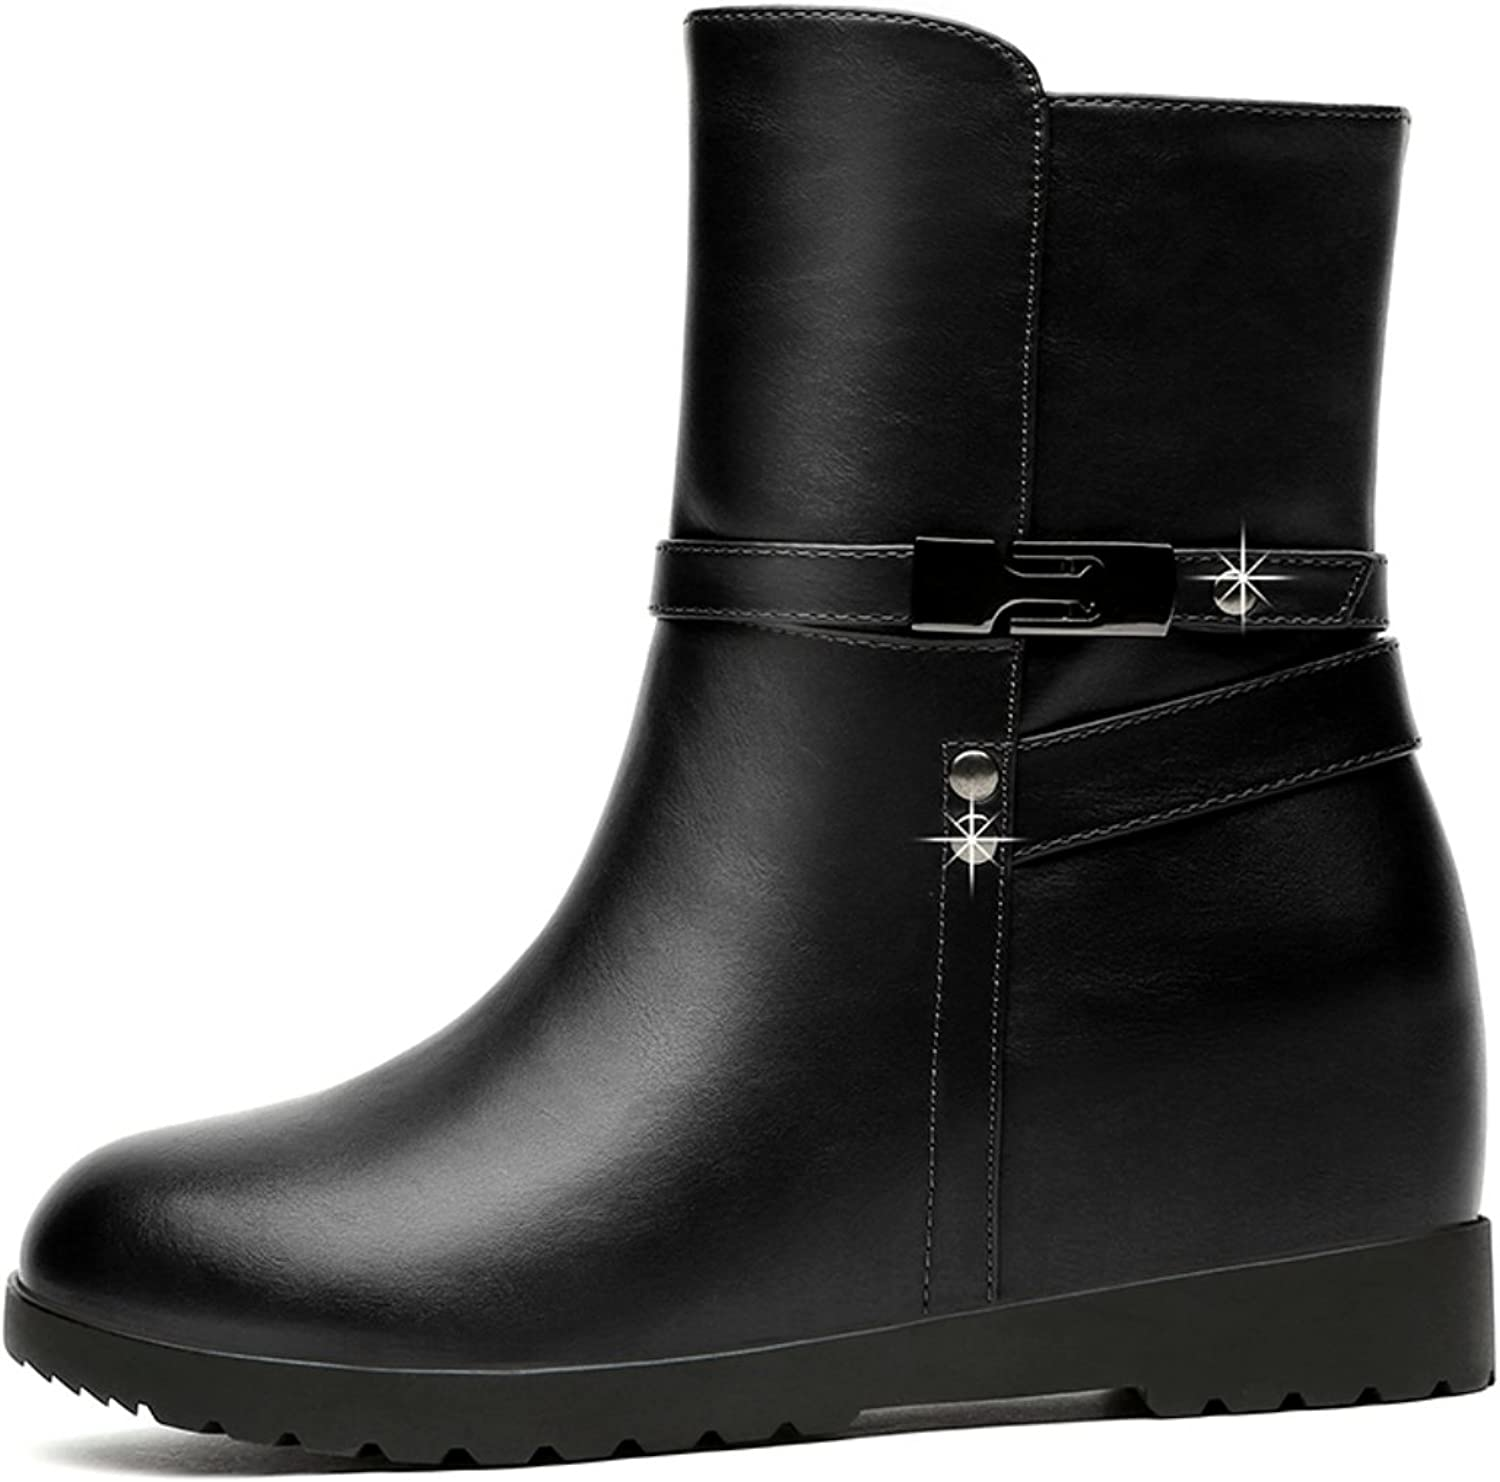 Lusam feeling Women's Patty Snow Boots, Black   Rubber Ankle Wide Calf Fit Boots for Women